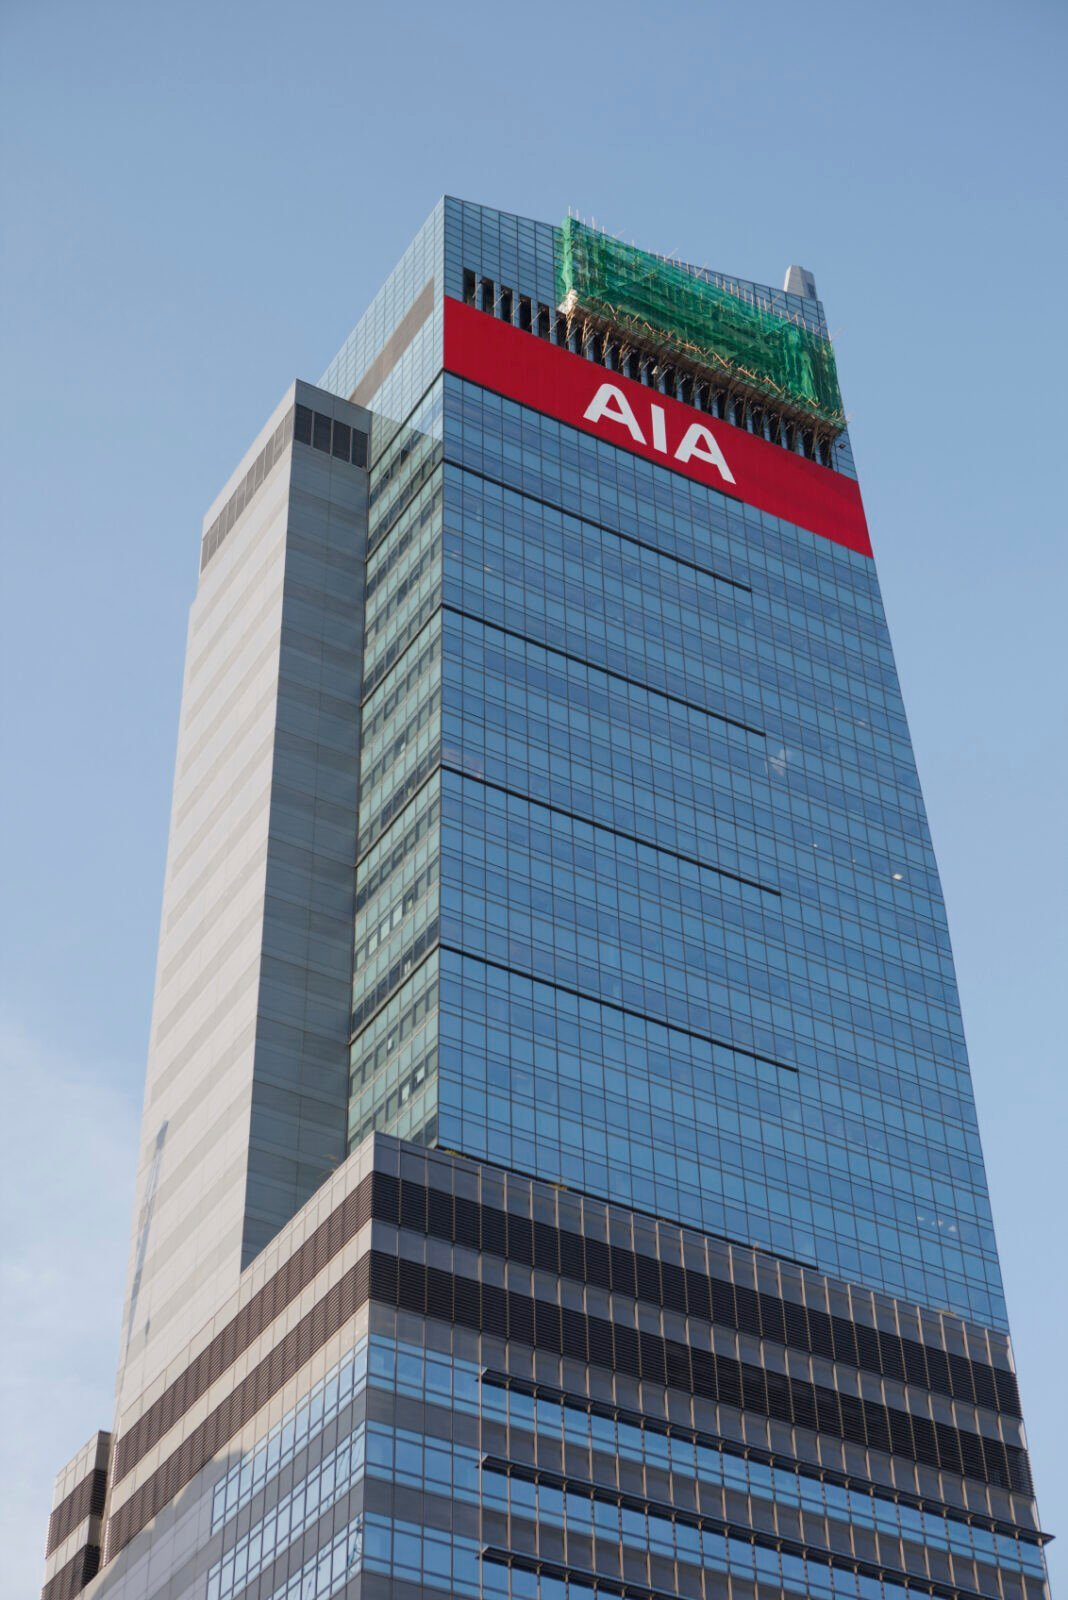 AIA Central Tower